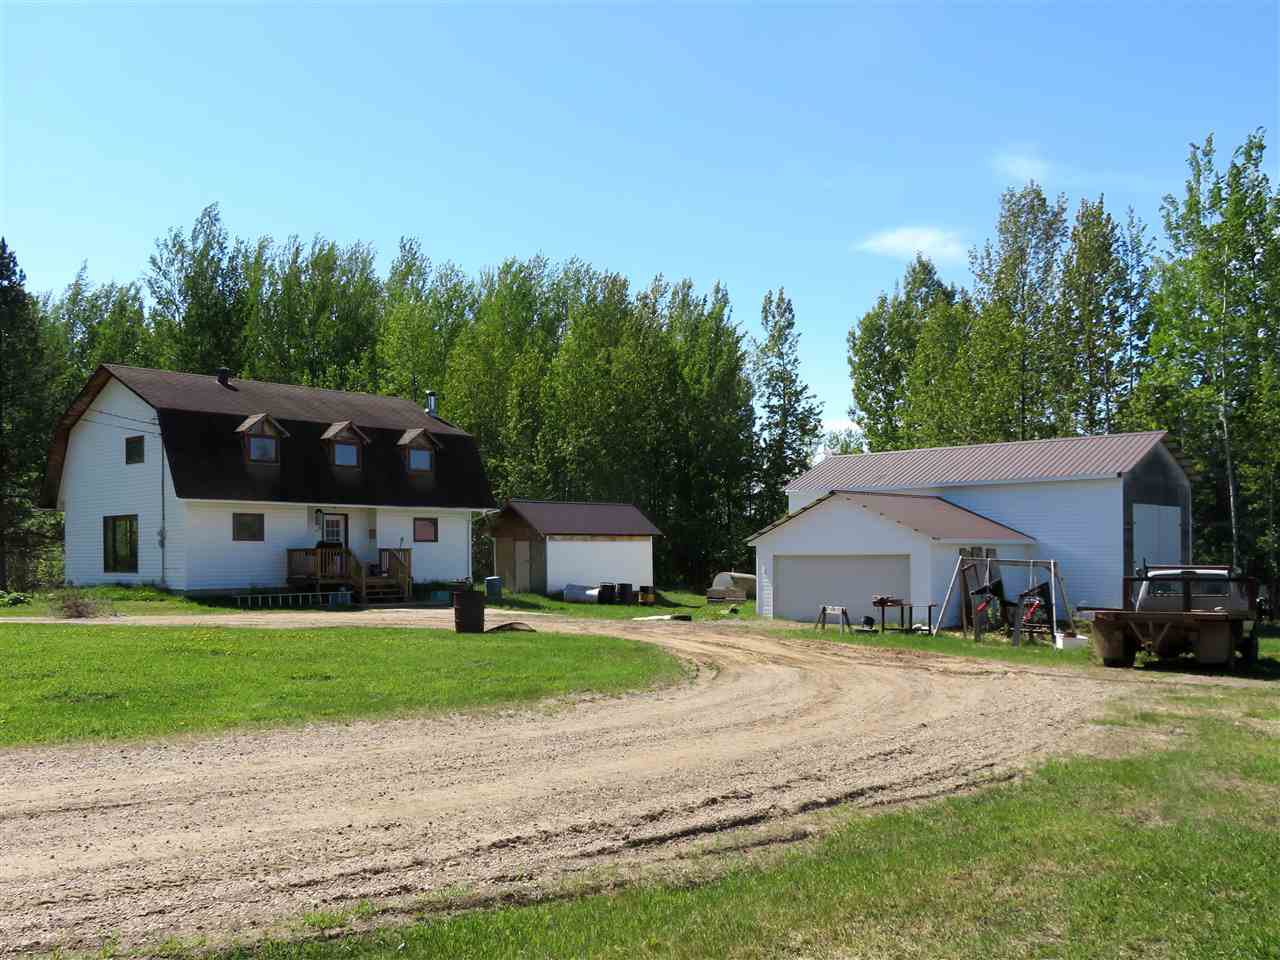 Main Photo: MILE 283 97 (ALASKA) Highway in Fort Nelson: Fort Nelson - Rural House for sale (Fort Nelson (Zone 64))  : MLS®# R2275782